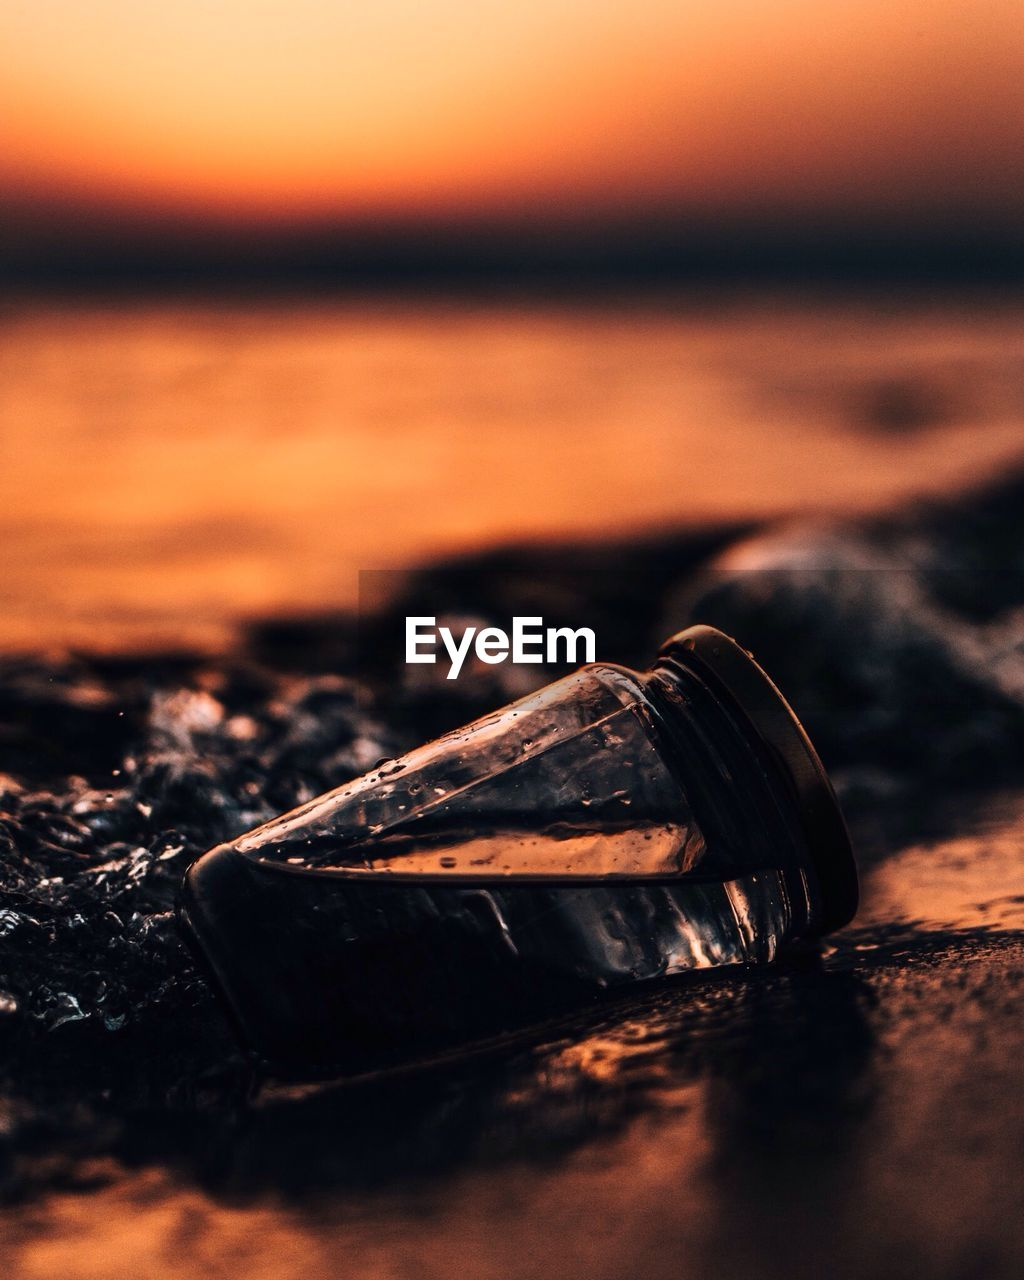 selective focus, close-up, sunset, no people, wood - material, nature, sky, still life, water, land, metal, outdoors, social issues, orange color, beach, sea, beauty in nature, abandoned, old